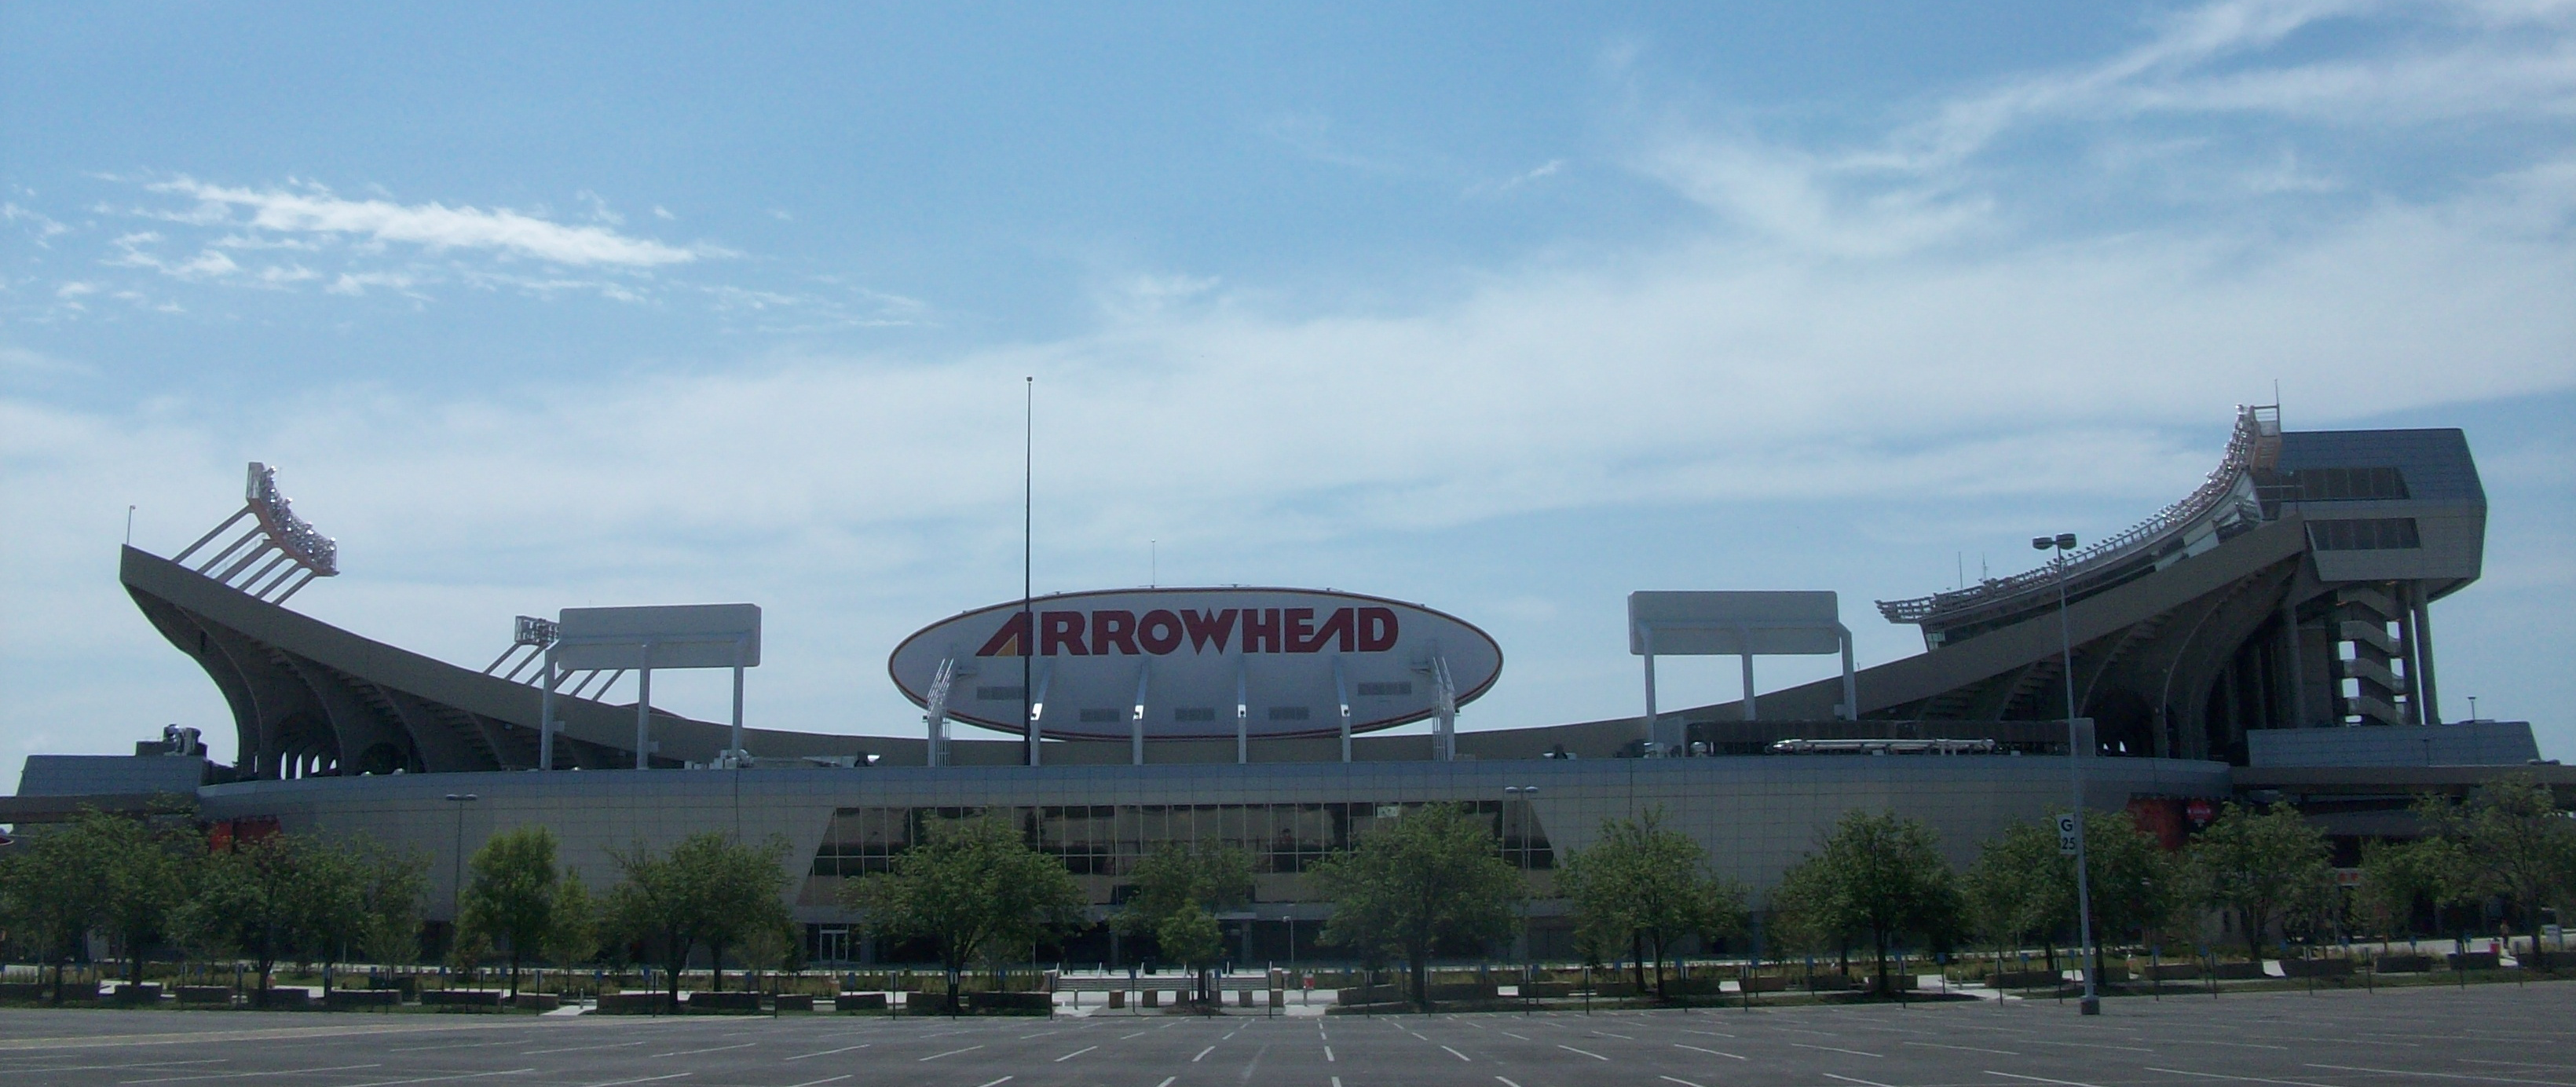 Exterior of Arrowhead Stadium on July 30, 2010, after the renovations were completed and unveiled.